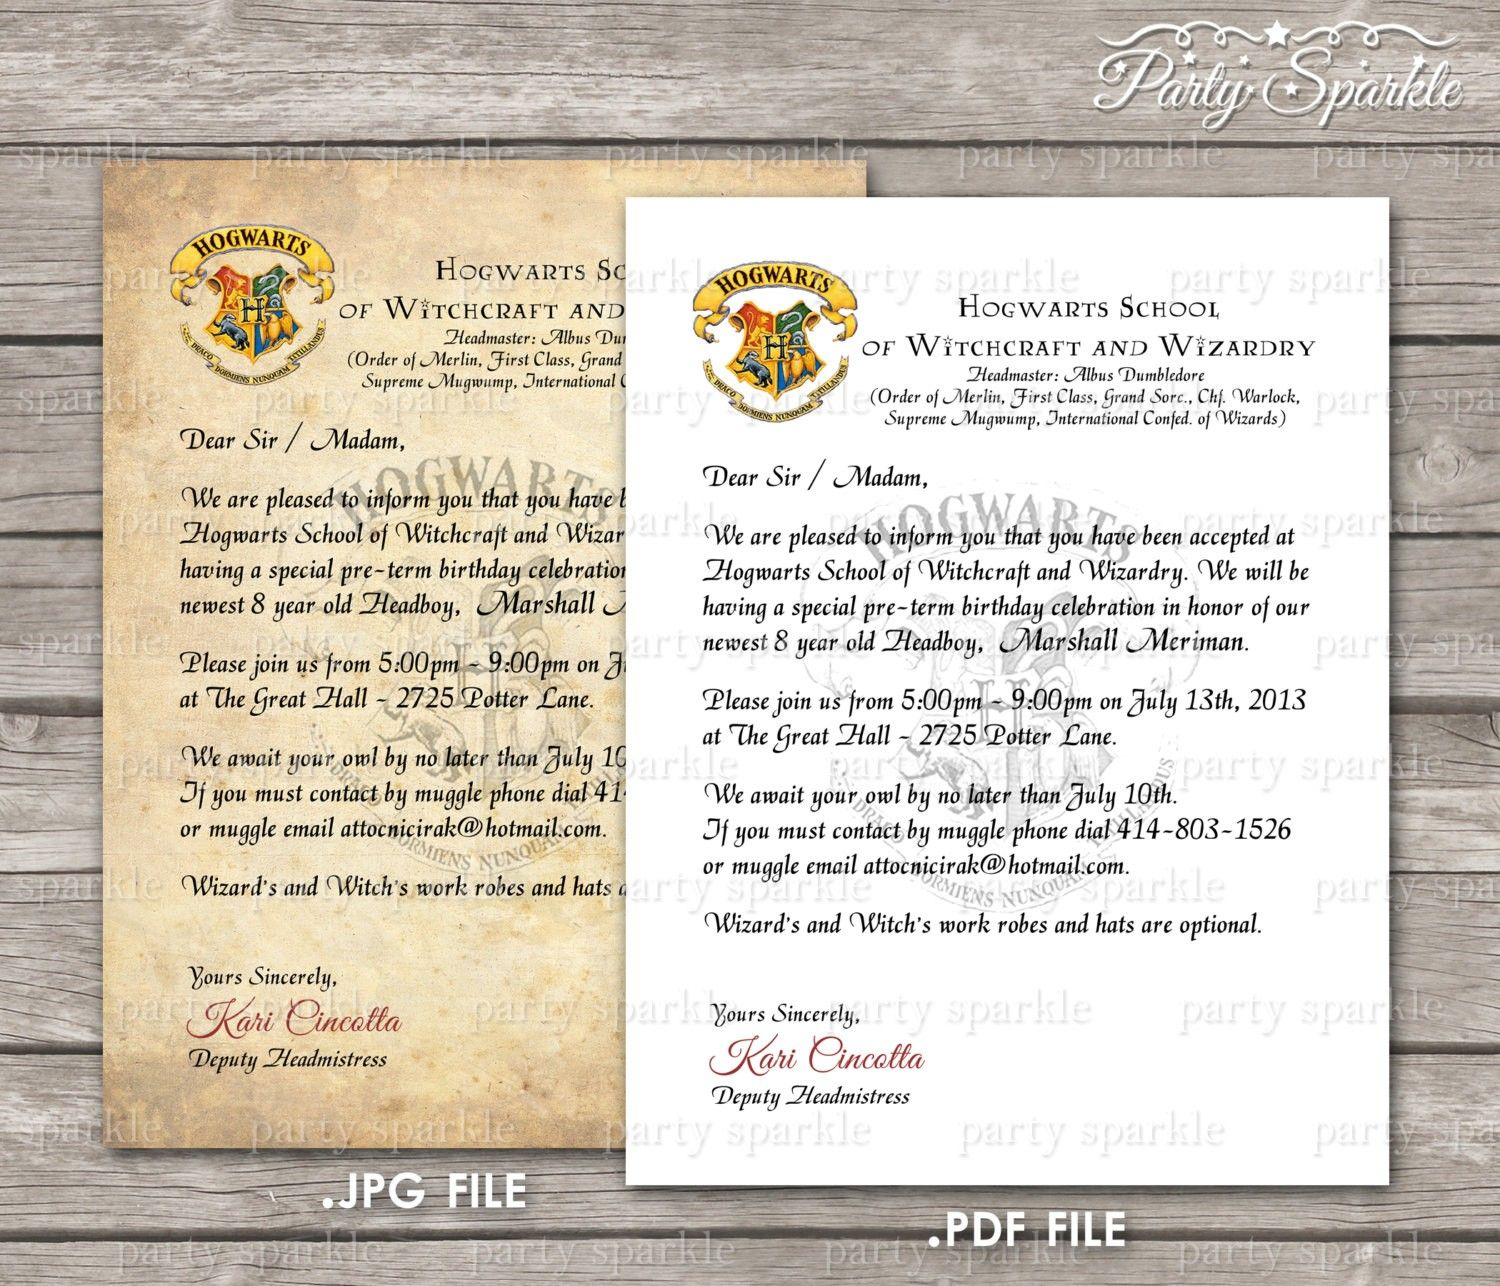 Hogwarts Acceptance Letter Party Invitation Template Why You Must Experi Hogwarts Acceptance Letter Harry Potter Birthday Invitations Harry Potter Invitations